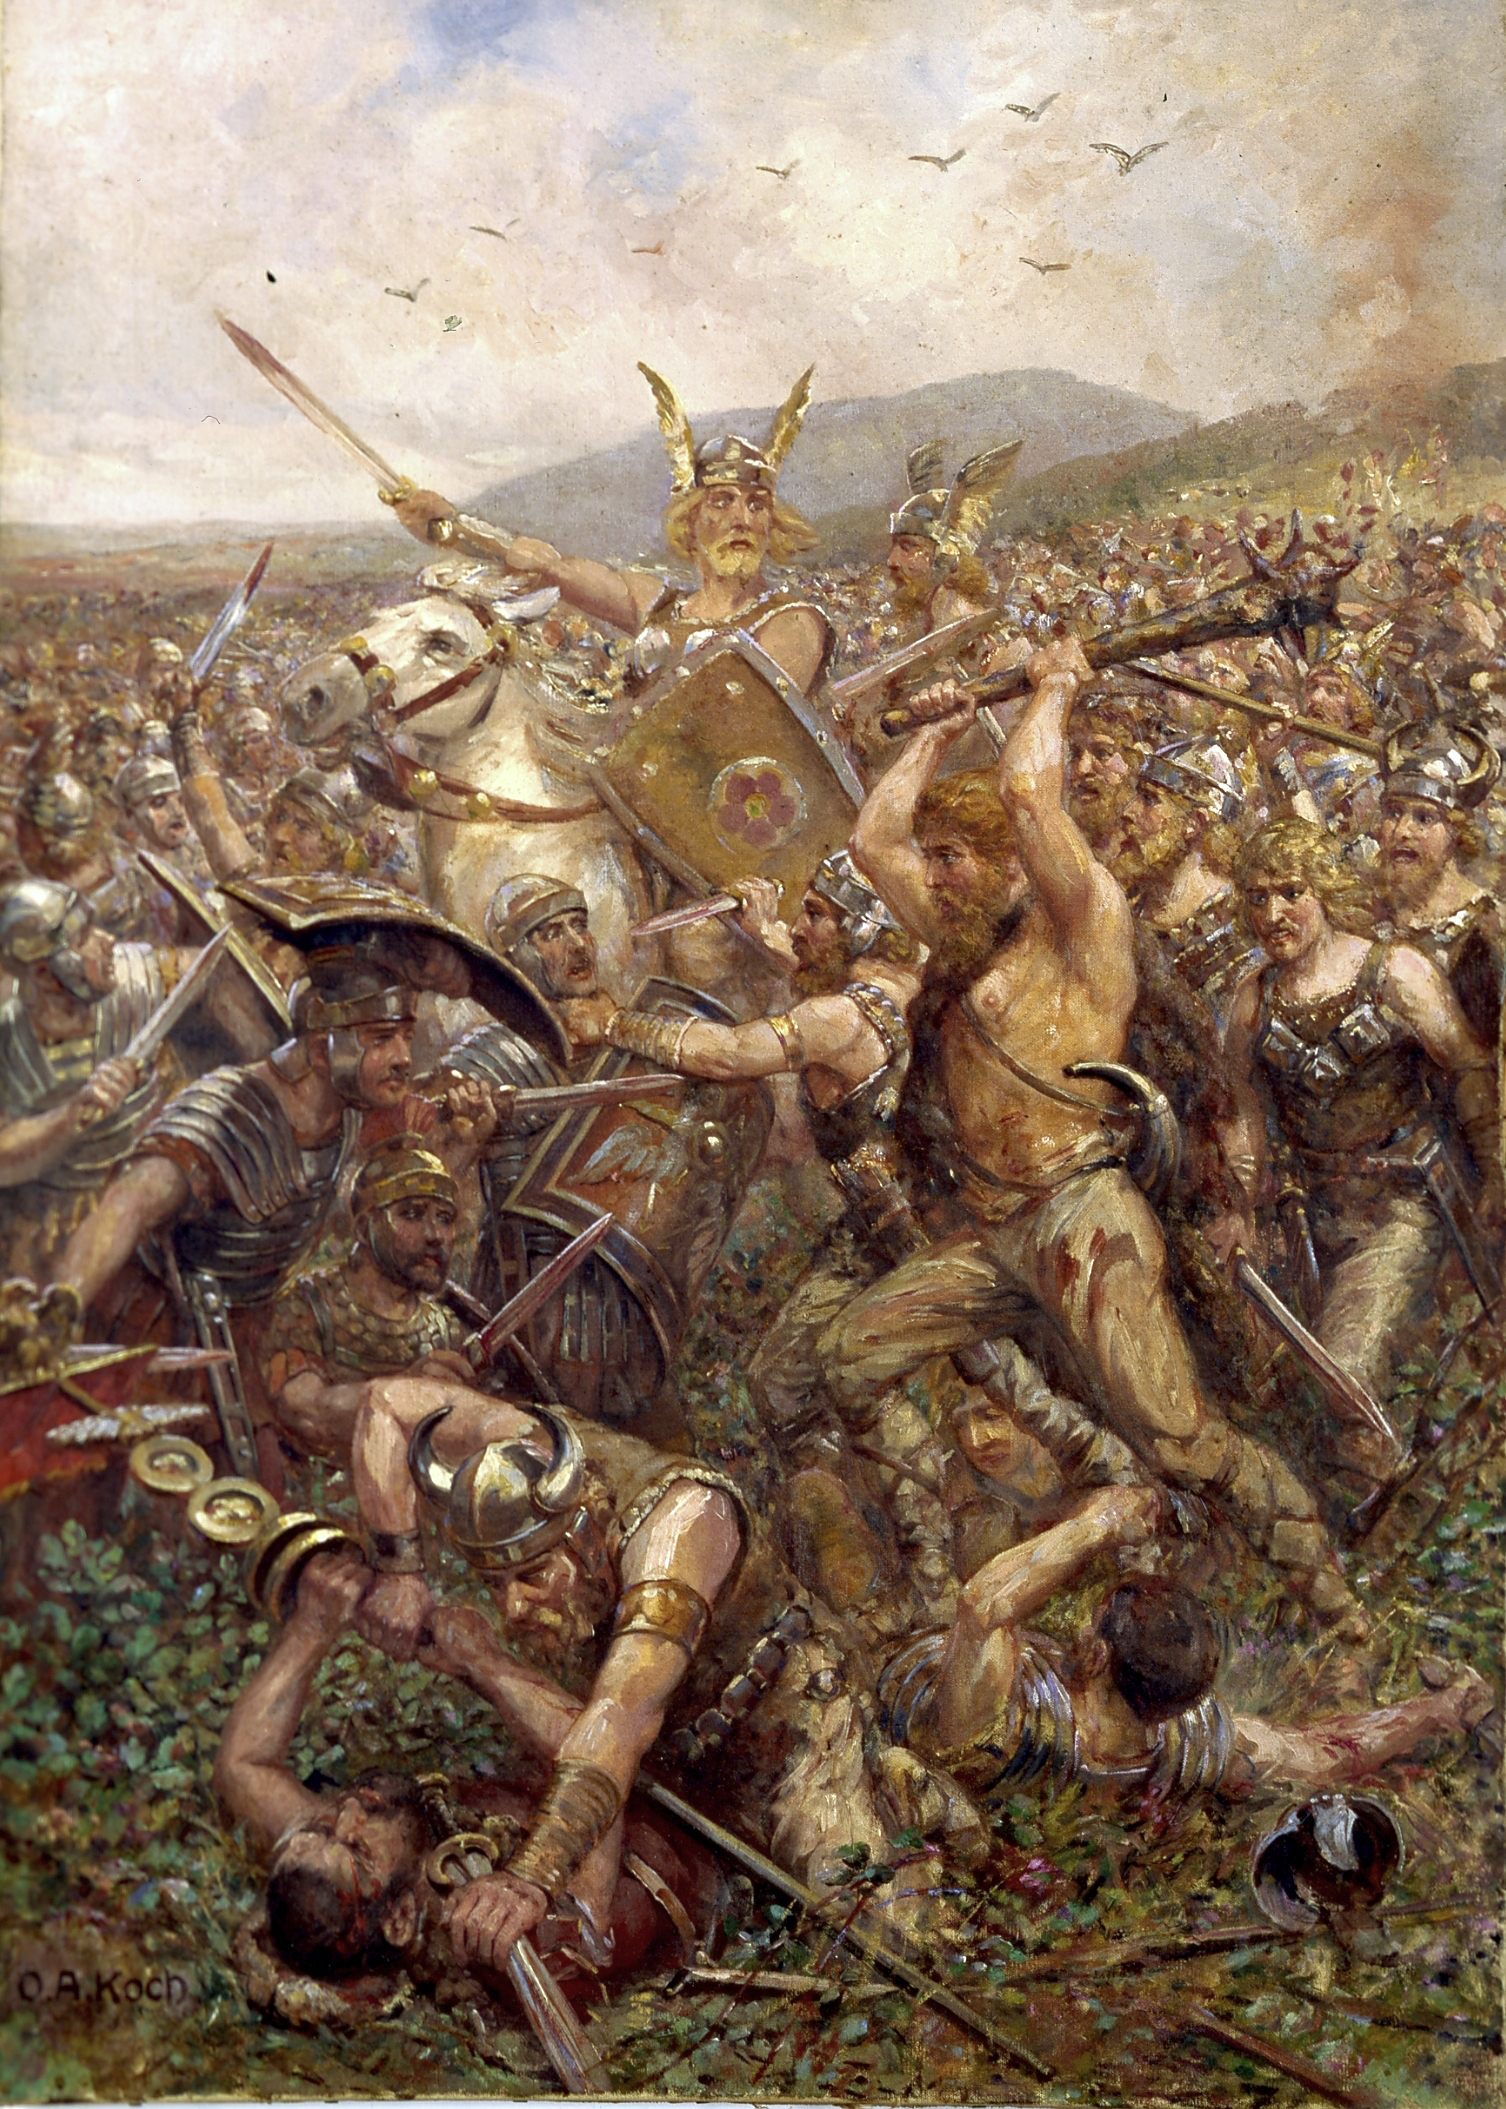 iliad civilized vs barbaric essay The essay describes how the iliad demonstrates the way force, exercised to the extreme in war.